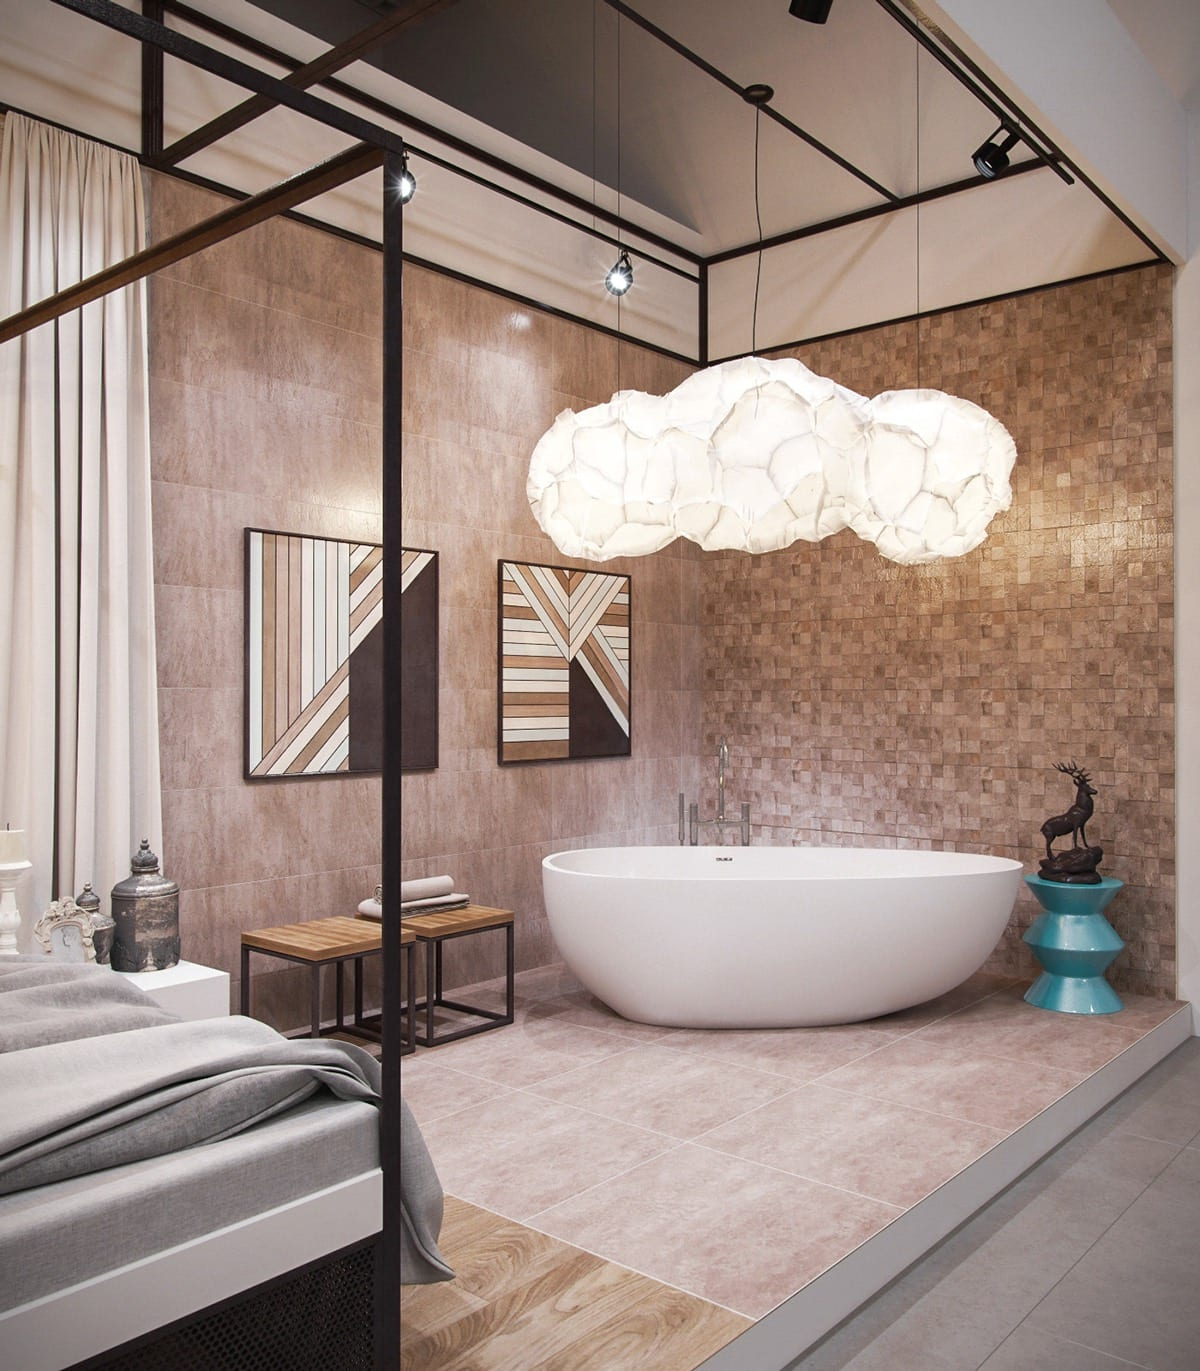 Bathtubs design ideas in 2019